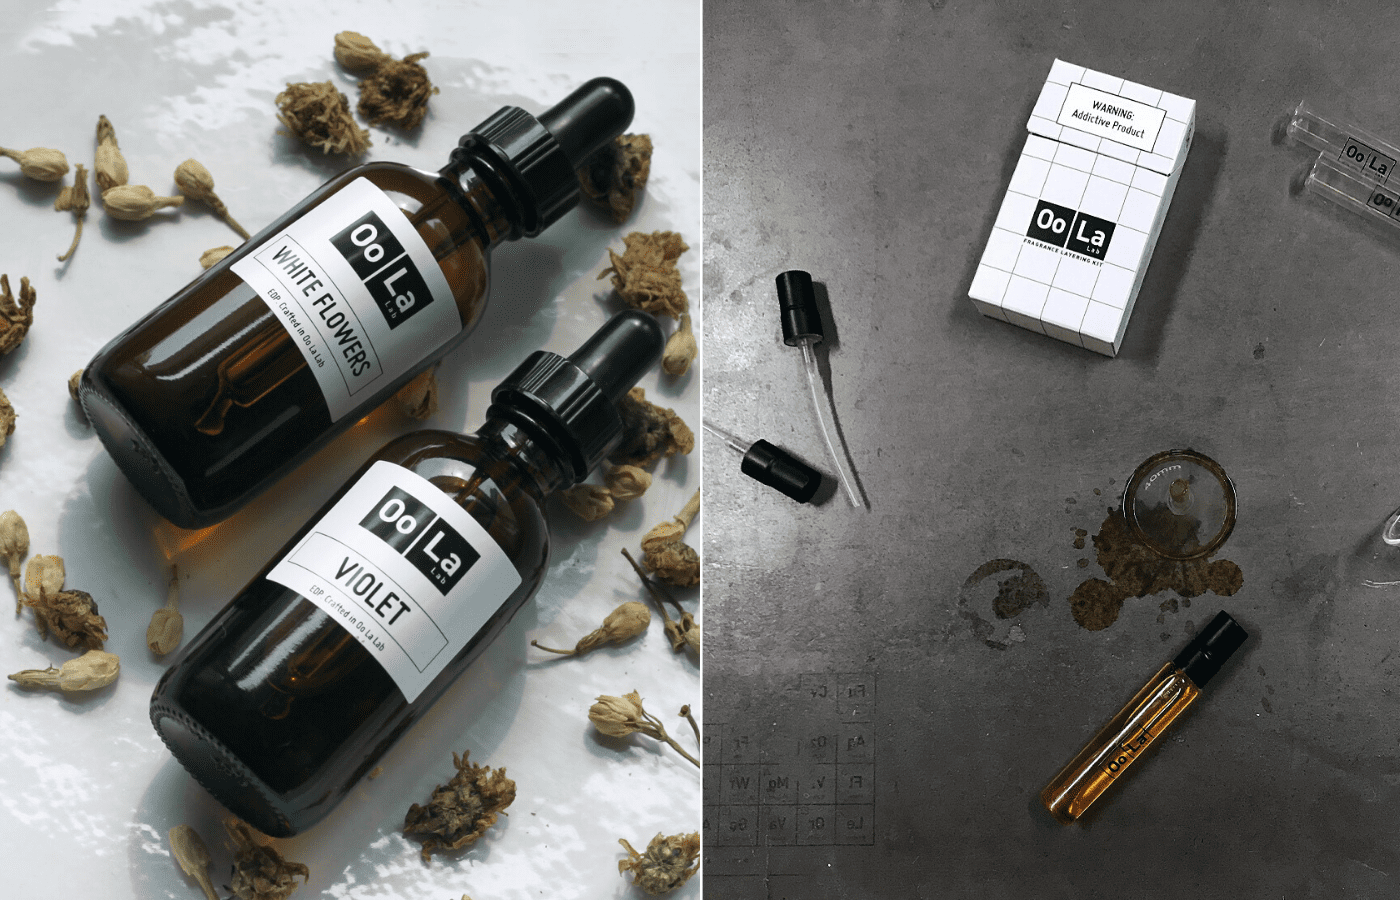 oo la lab | Local perfume brands | Honeycombers Singapore